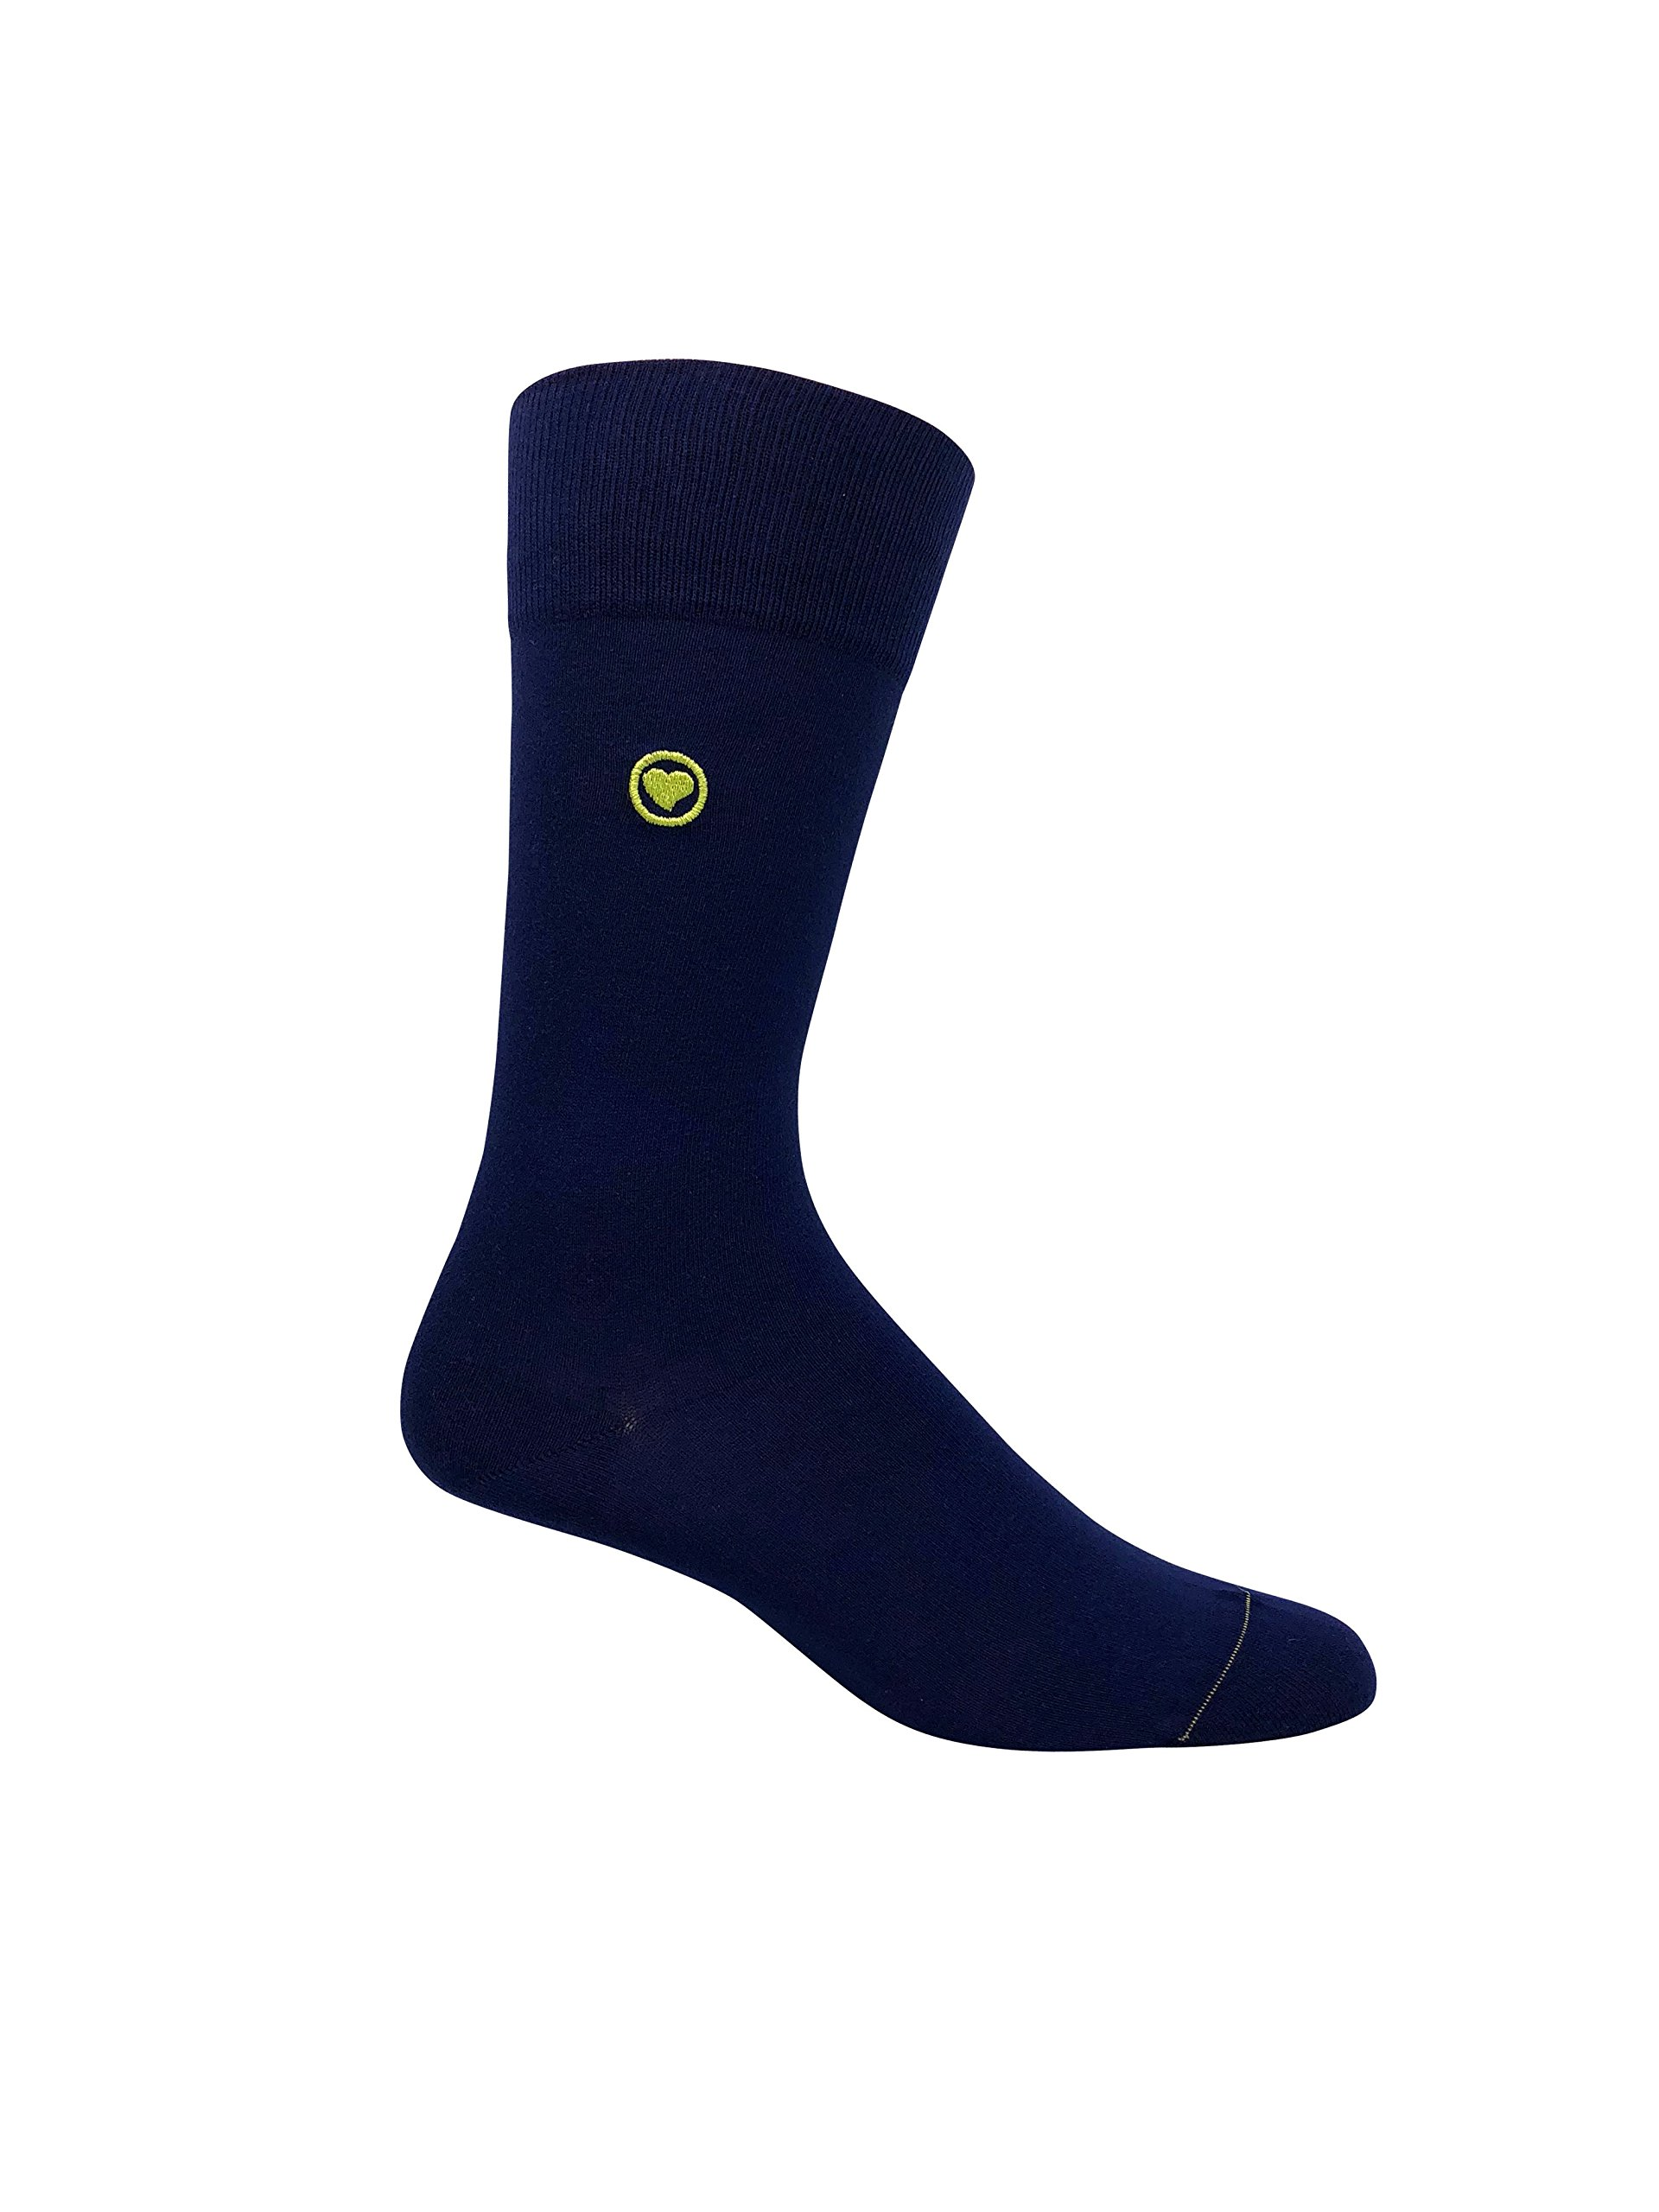 Men's Navy Dress Socks. 98% organic cotton premium socks for men.